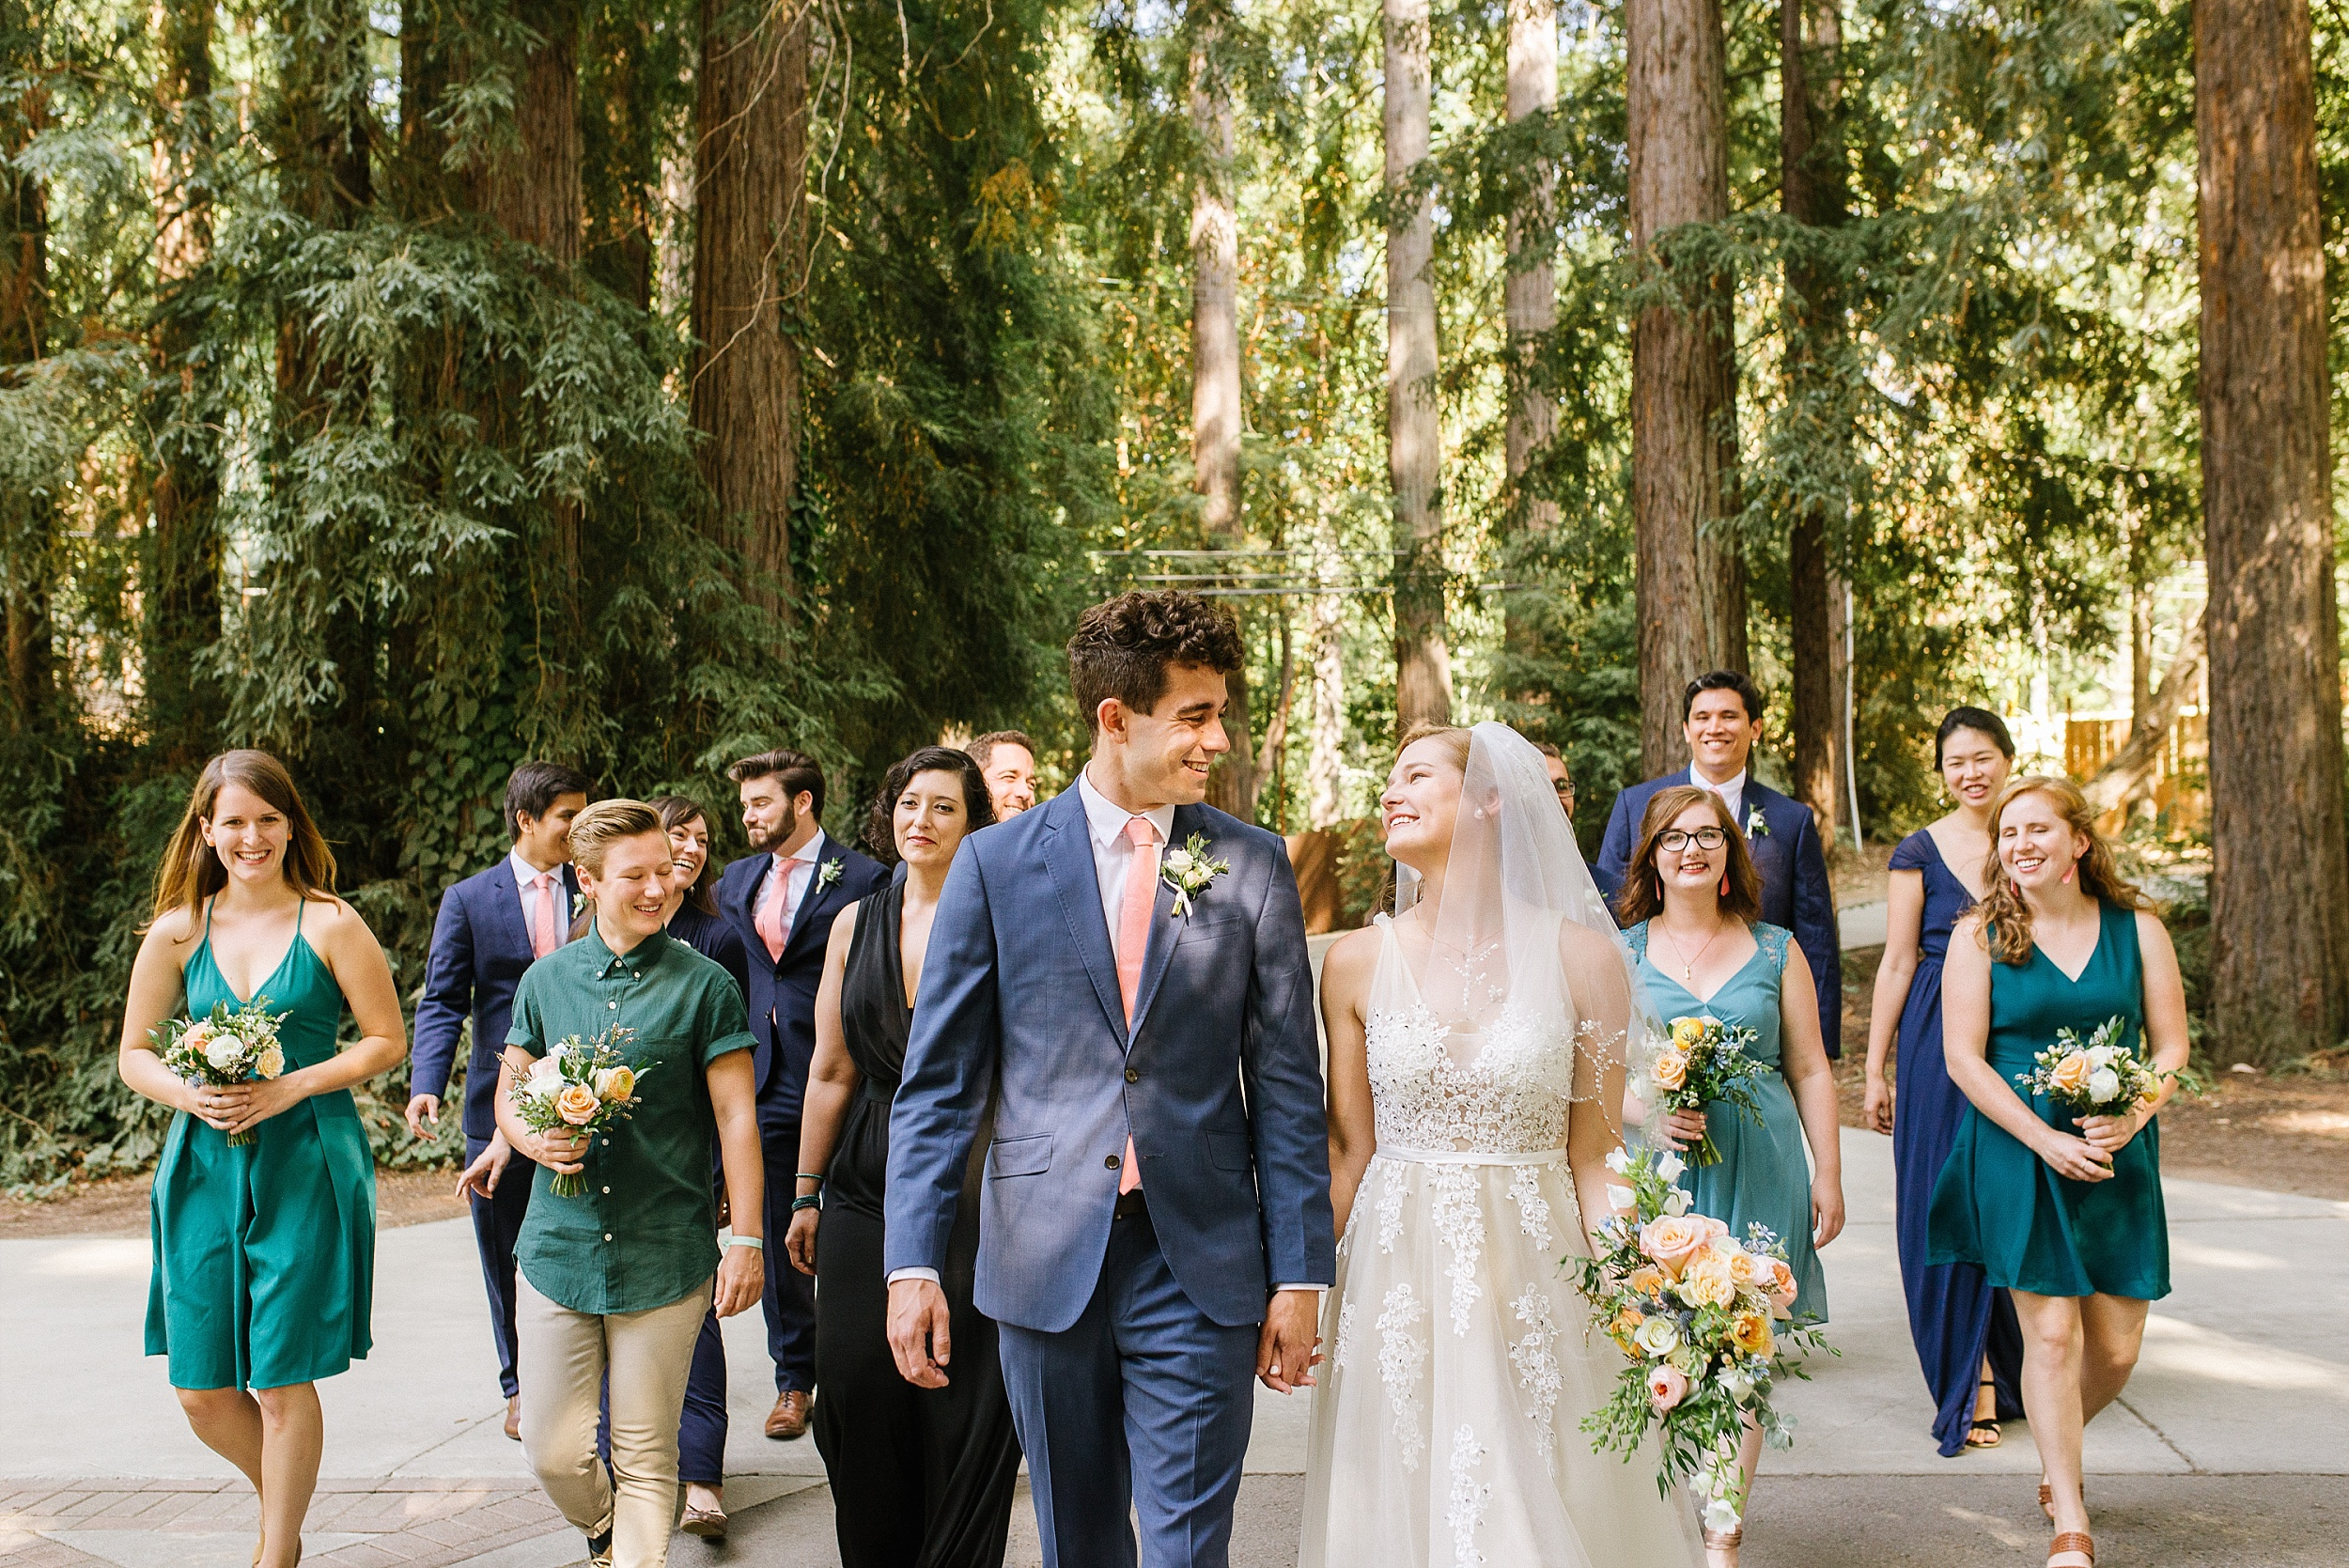 Amphitheatre-of-the-Redwoods-wedding-erikariley_chelsea-dier-photography_0058.jpg